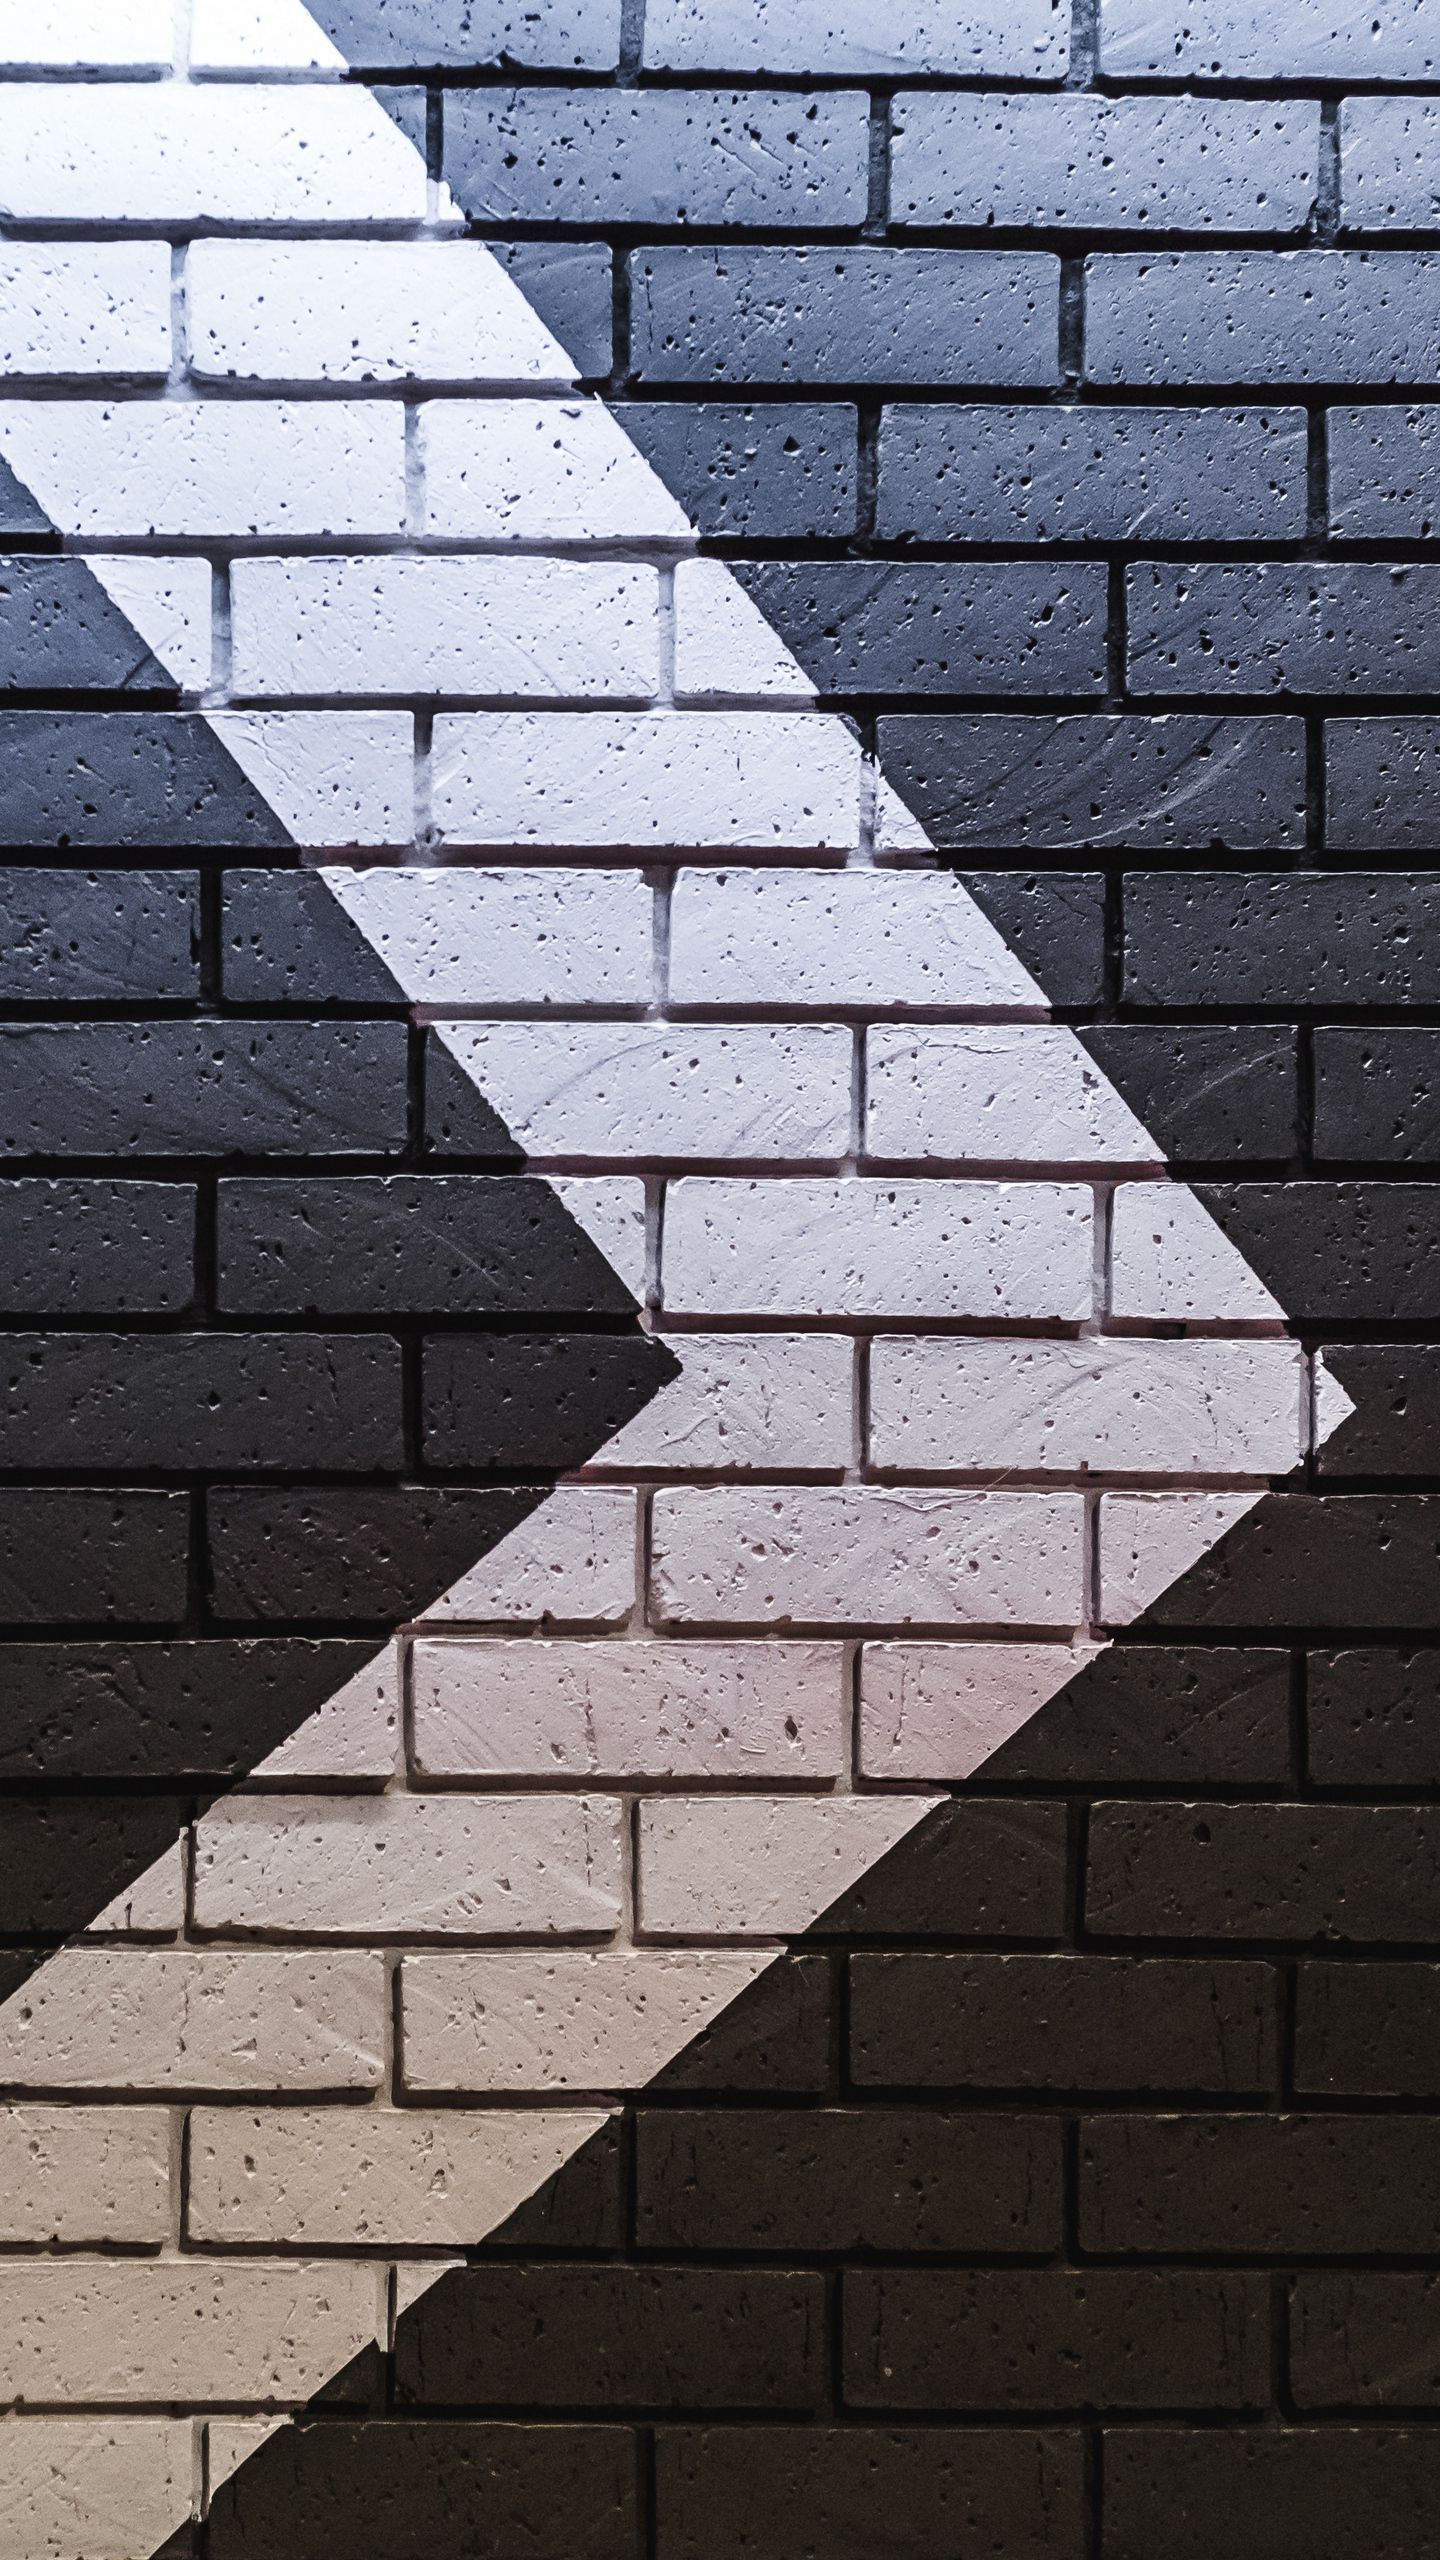 63 Wall Wallpapers HD For iPhones And Android | Sonaija